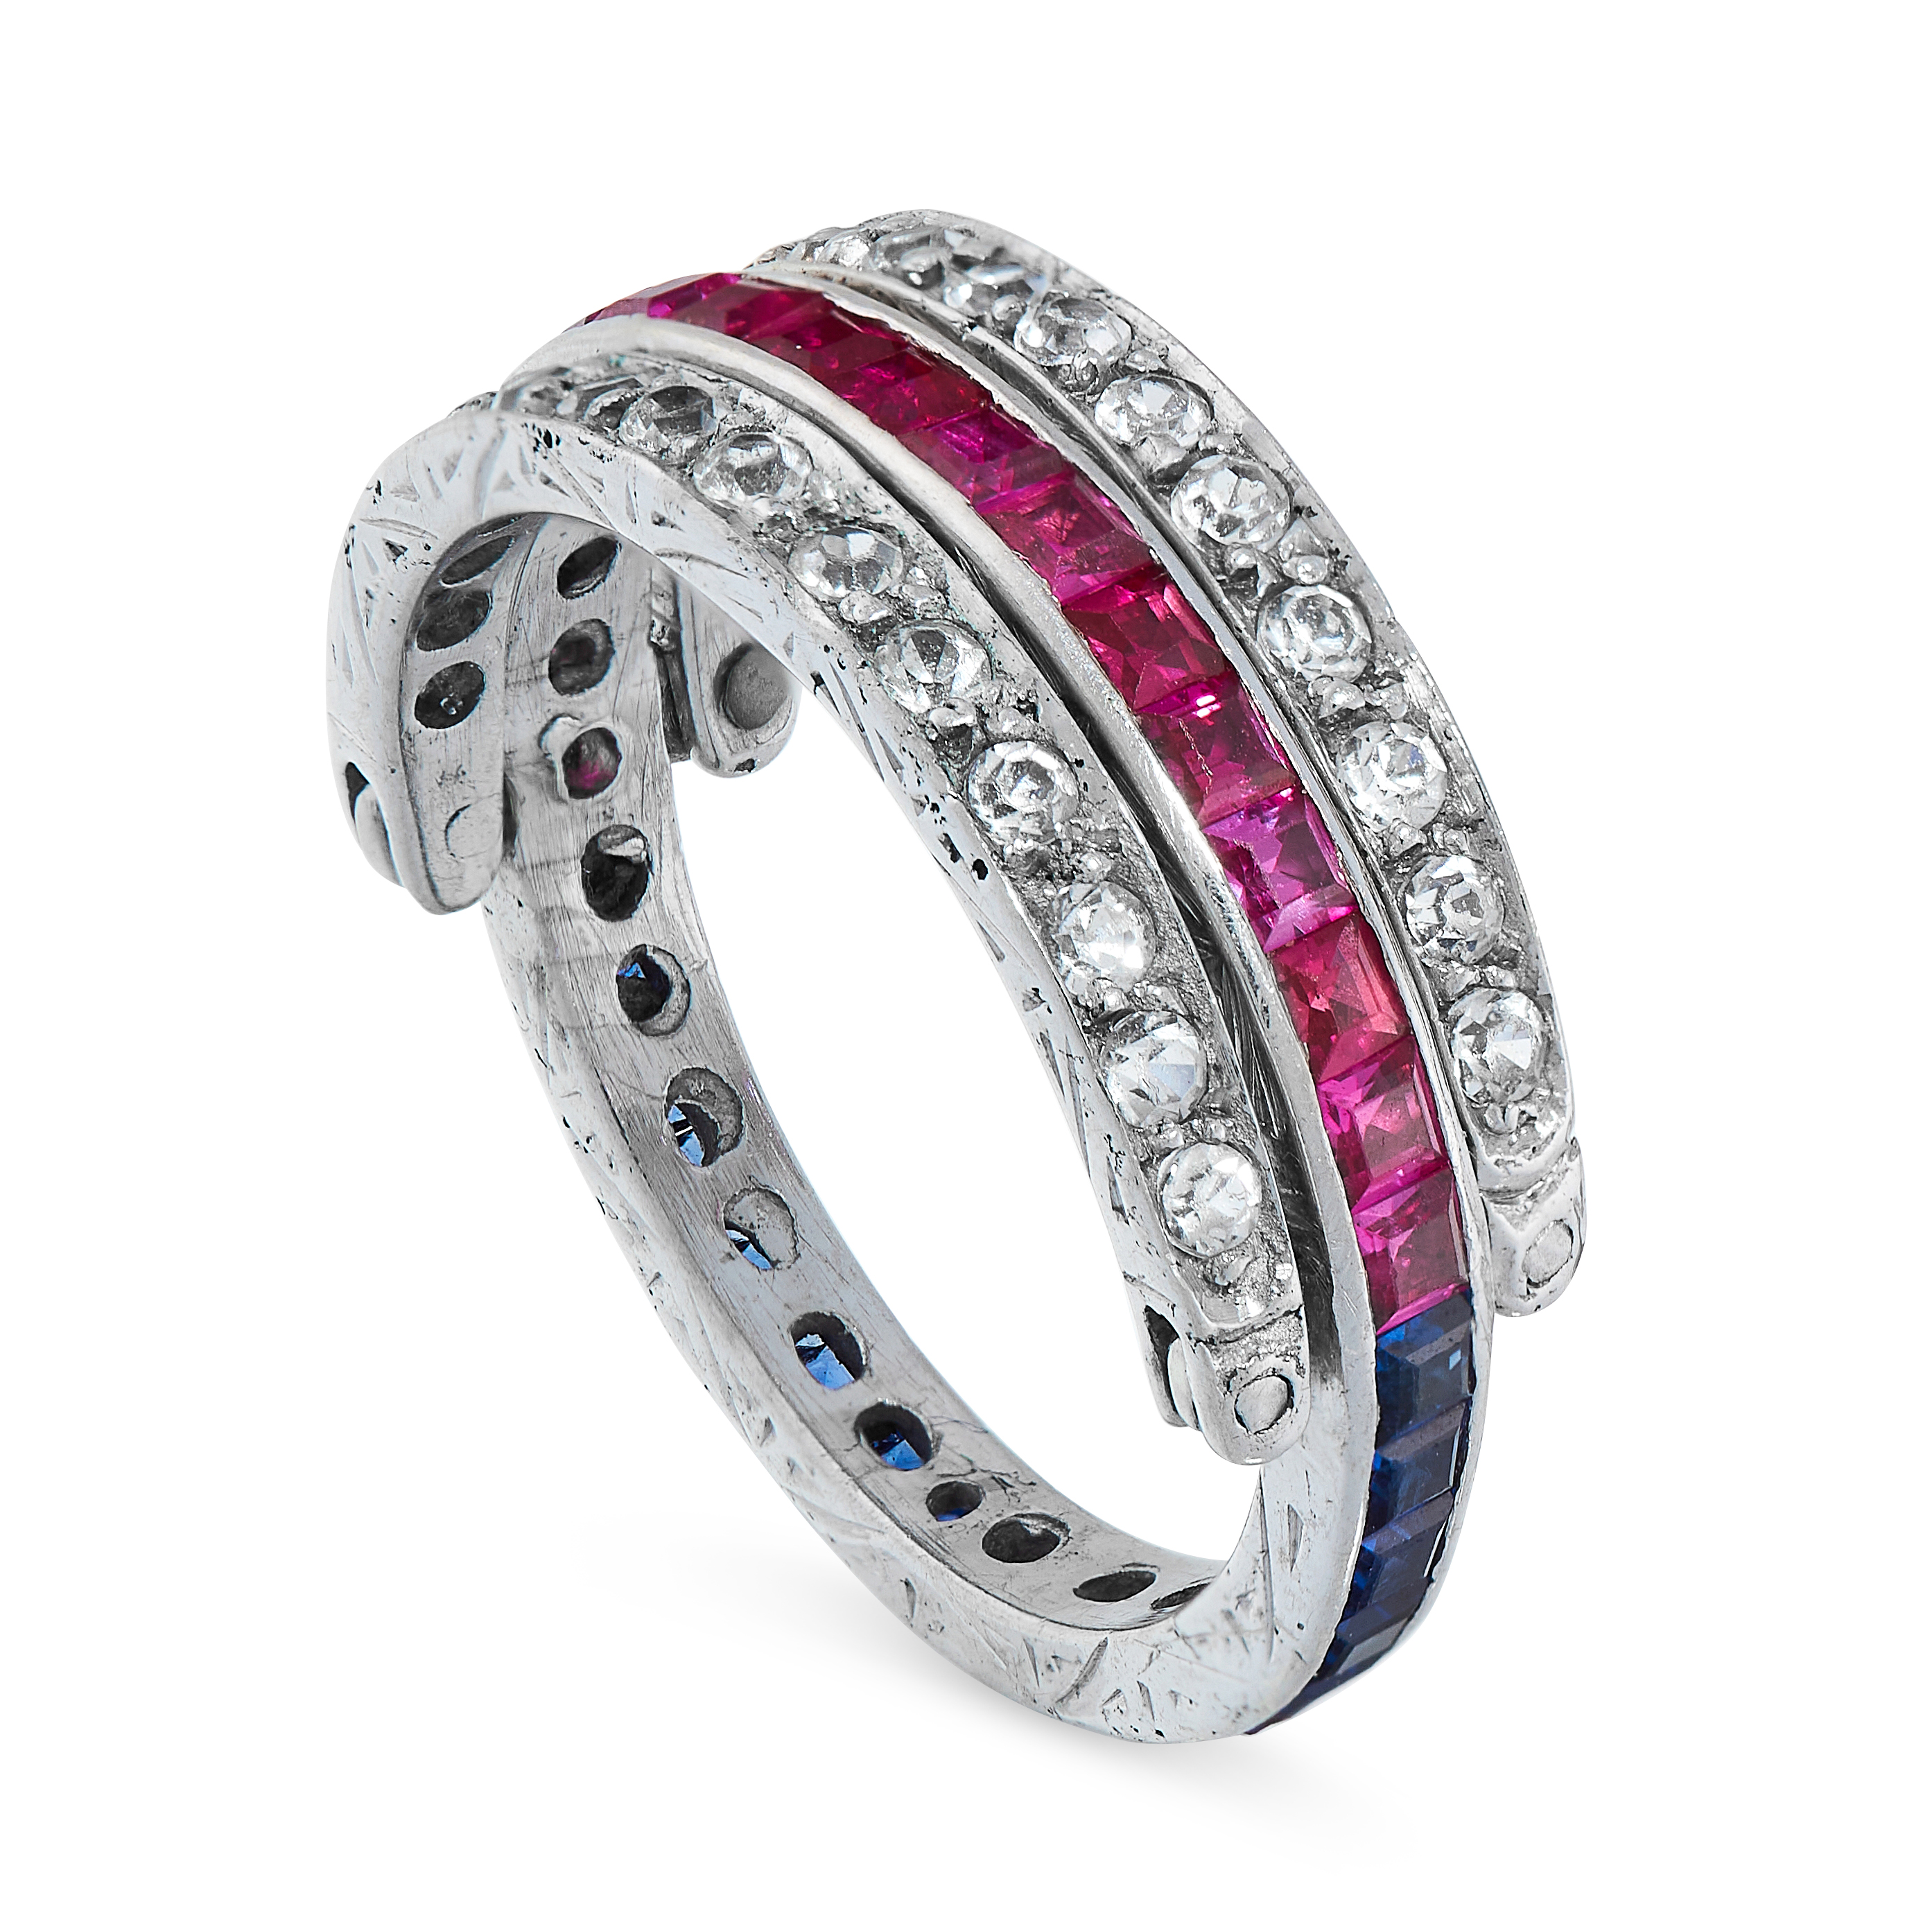 SYNTHETIC SAPPHIRE, RUBY AND PASTE REVERSIBLE RING the central band half set each with synthetic - Image 2 of 2